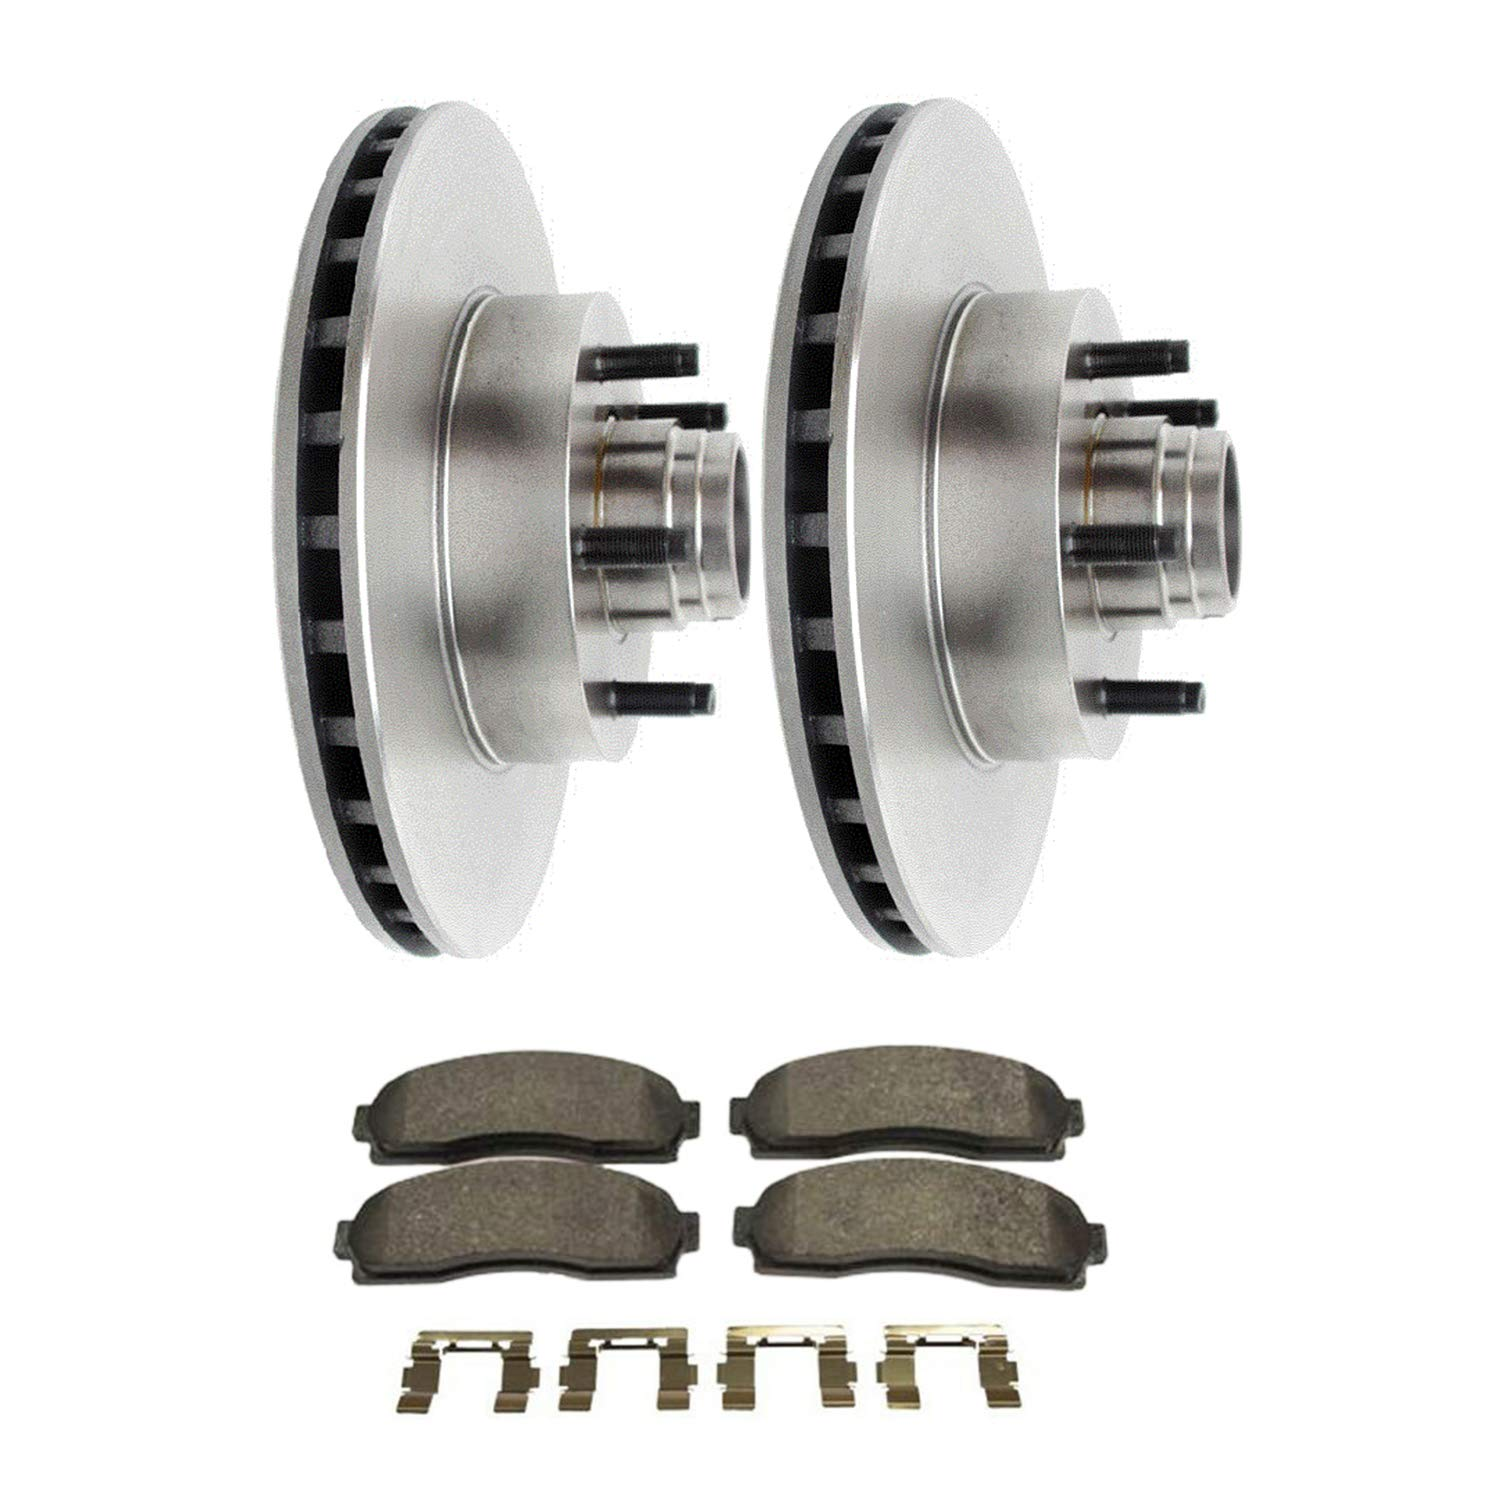 Detroit Axle 287mm Front Disc Replacement Brake Kit Rotors Ceramic Pads w//Hardware for 2003 2004 2005 2006 2007 2008 2009 Ford Ranger 2WD with 4 Wheel ABS//Mazda B2300